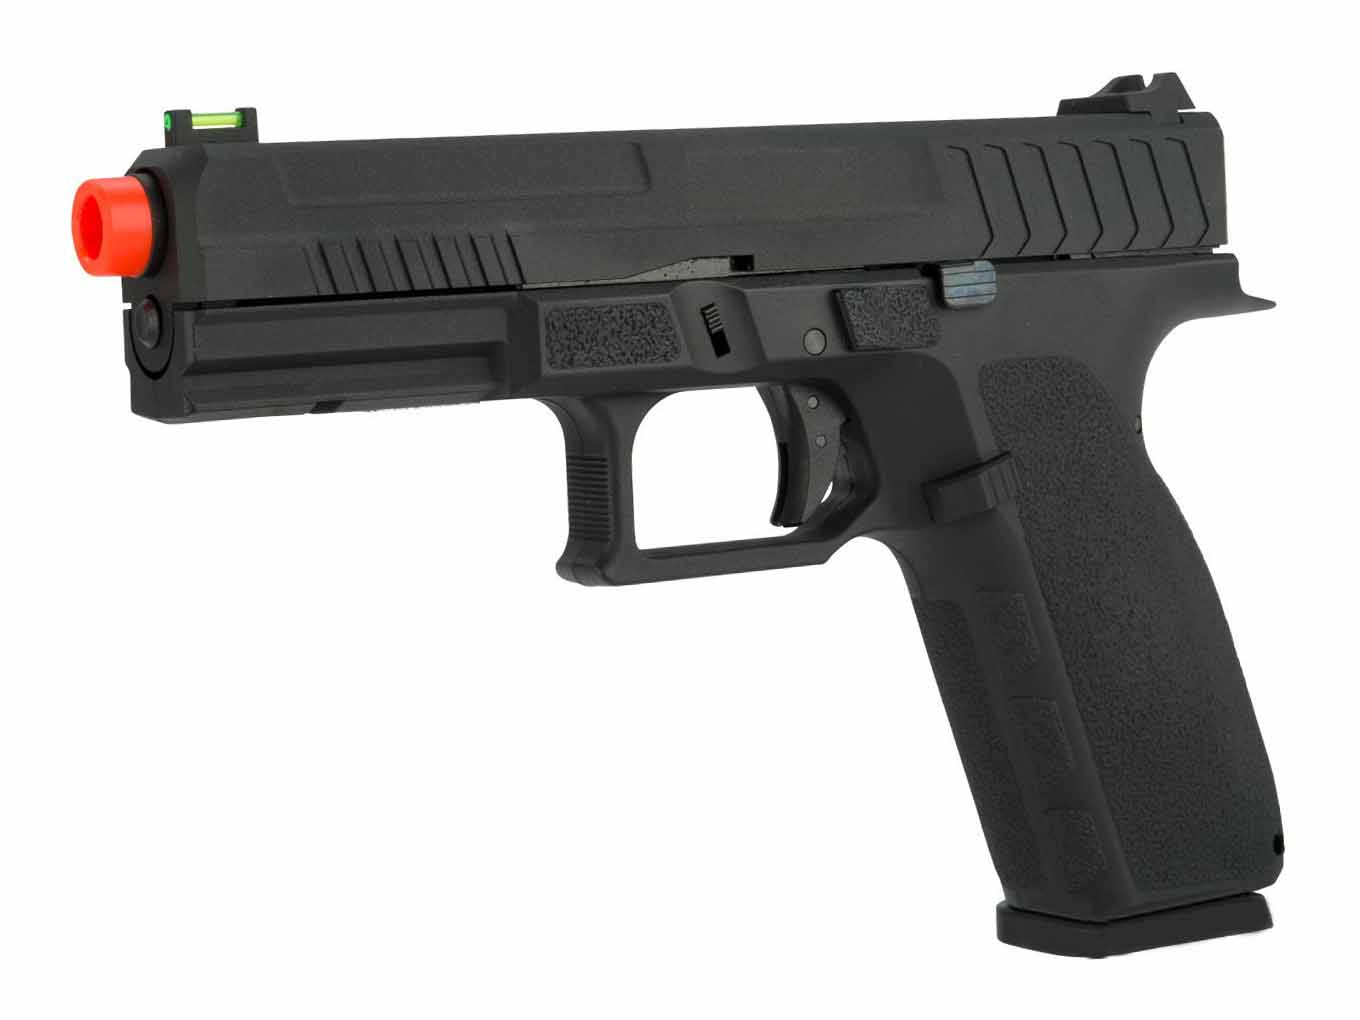 KJW KP-13 Full Size Polymer Frame Gas Blowback Pistol Black